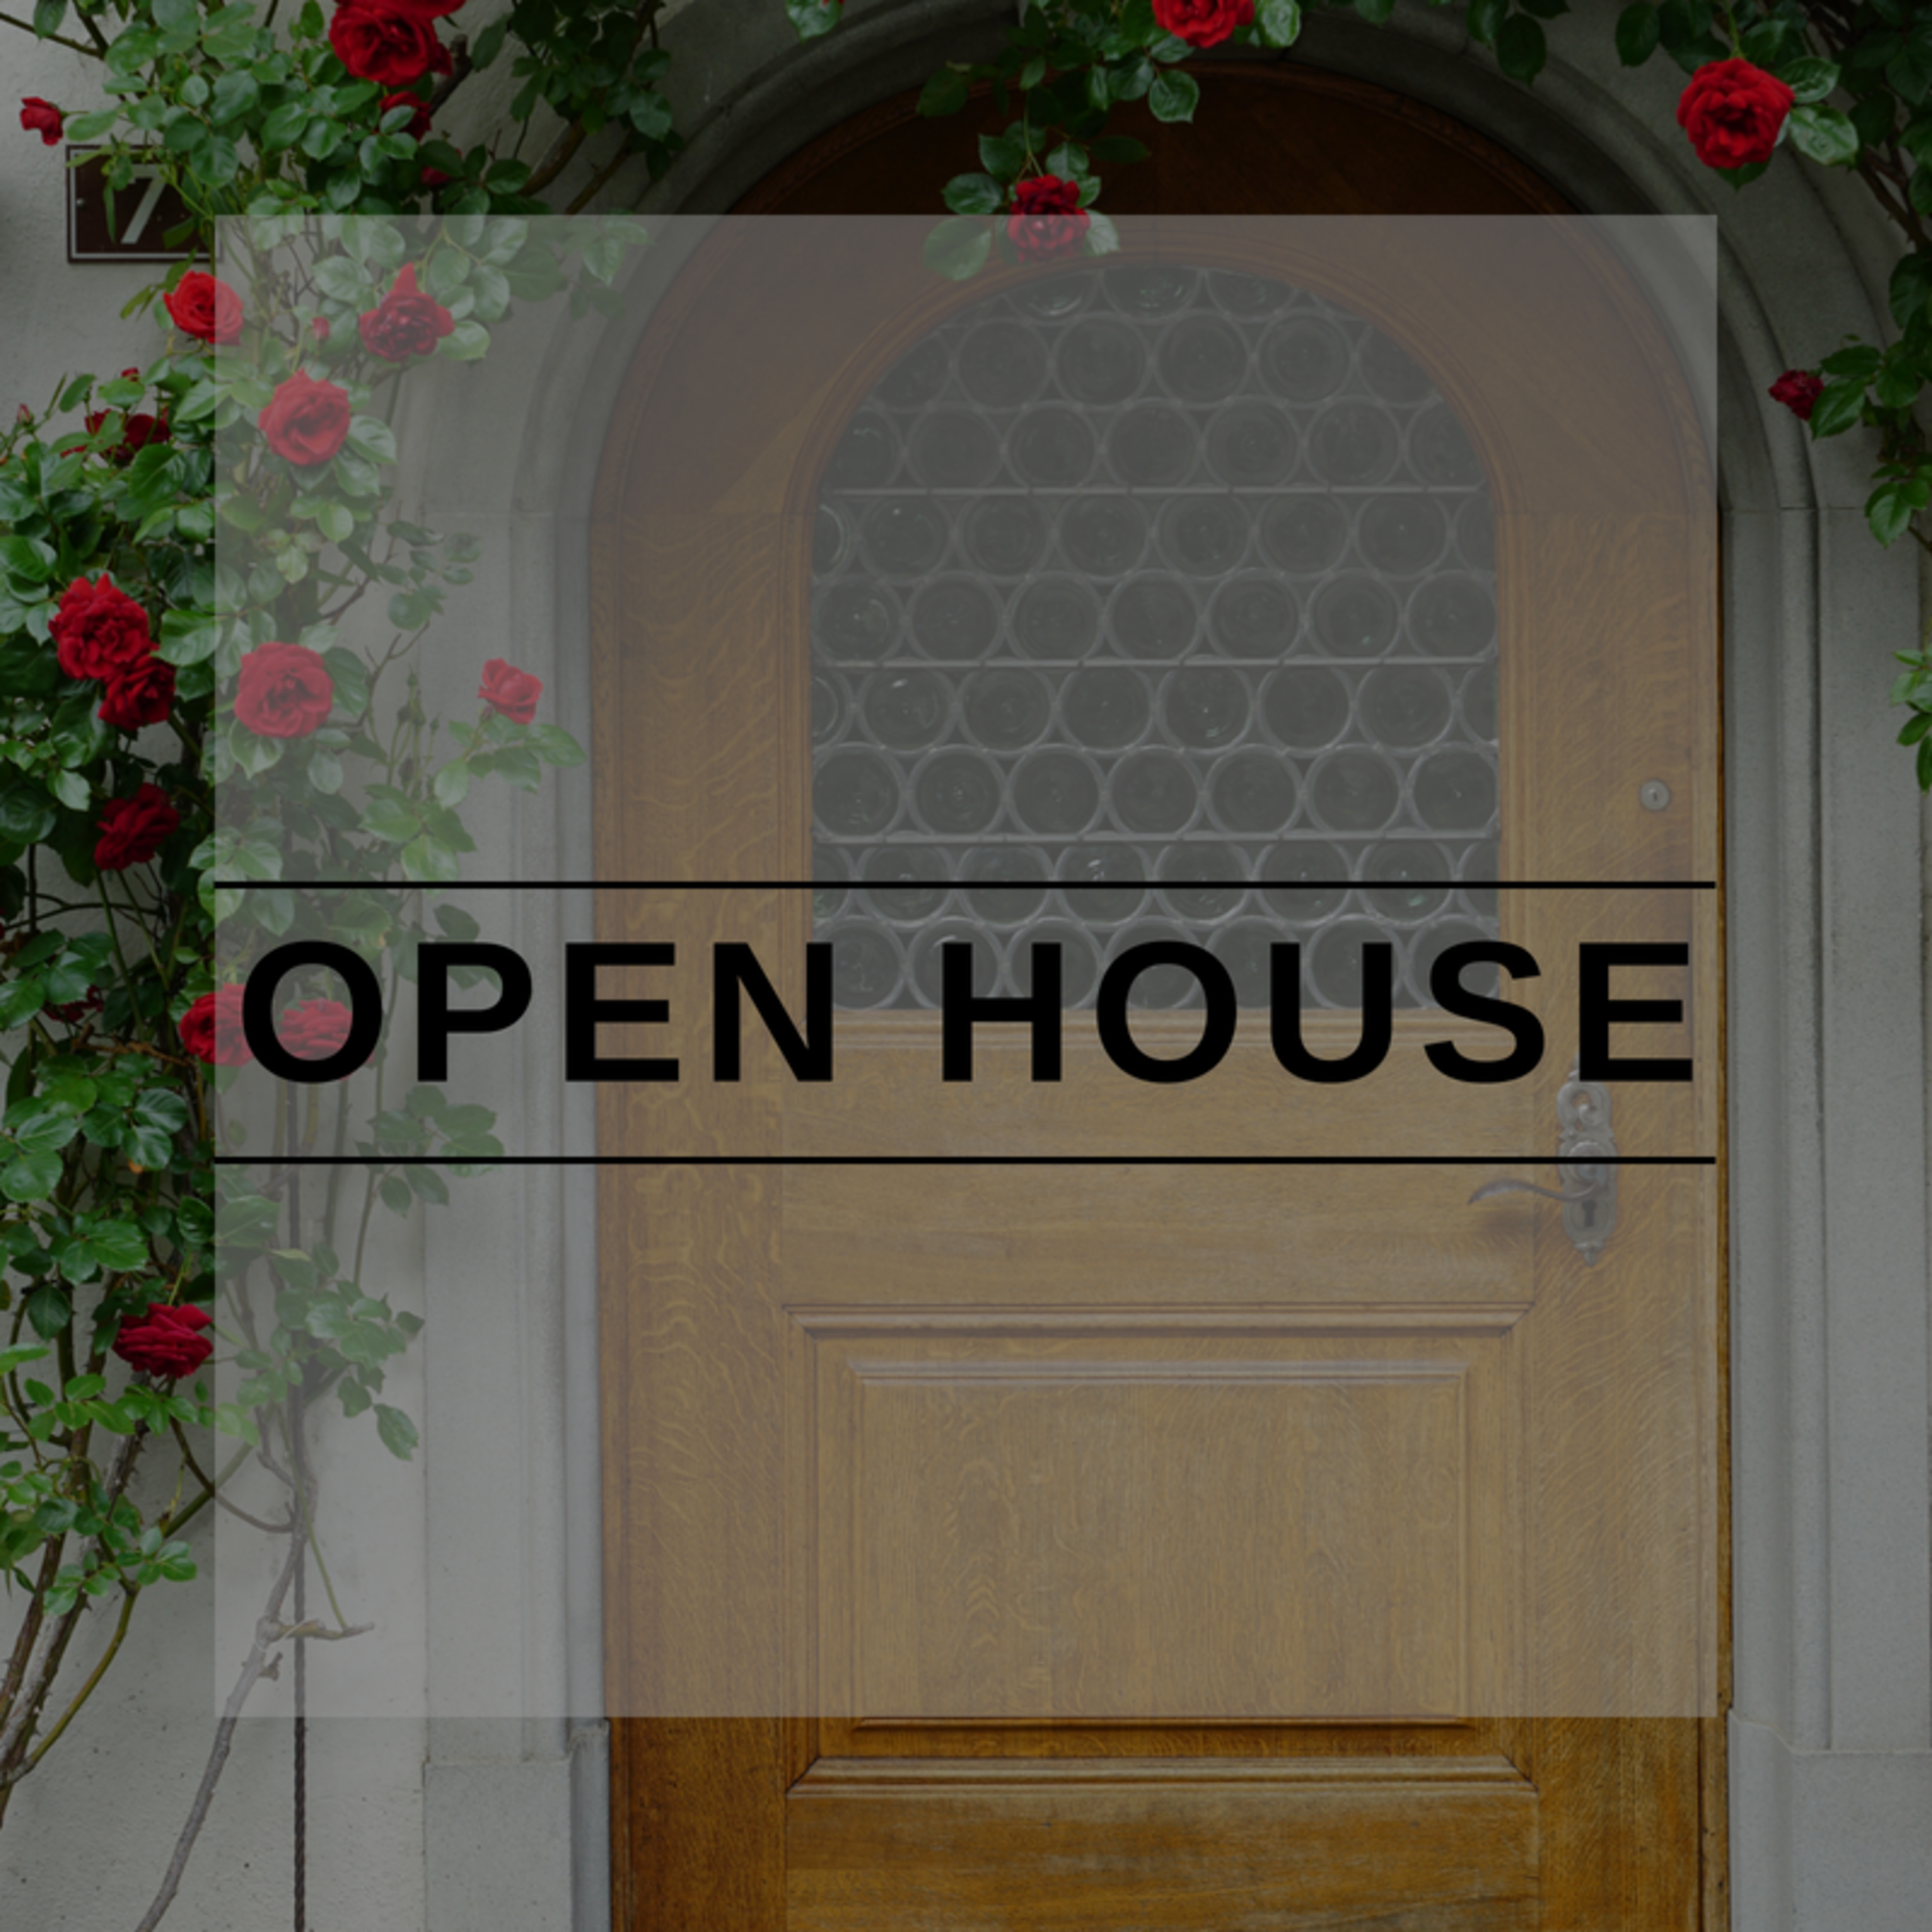 OPEN HOUSE LIST 5/26/18 – 5/27/18